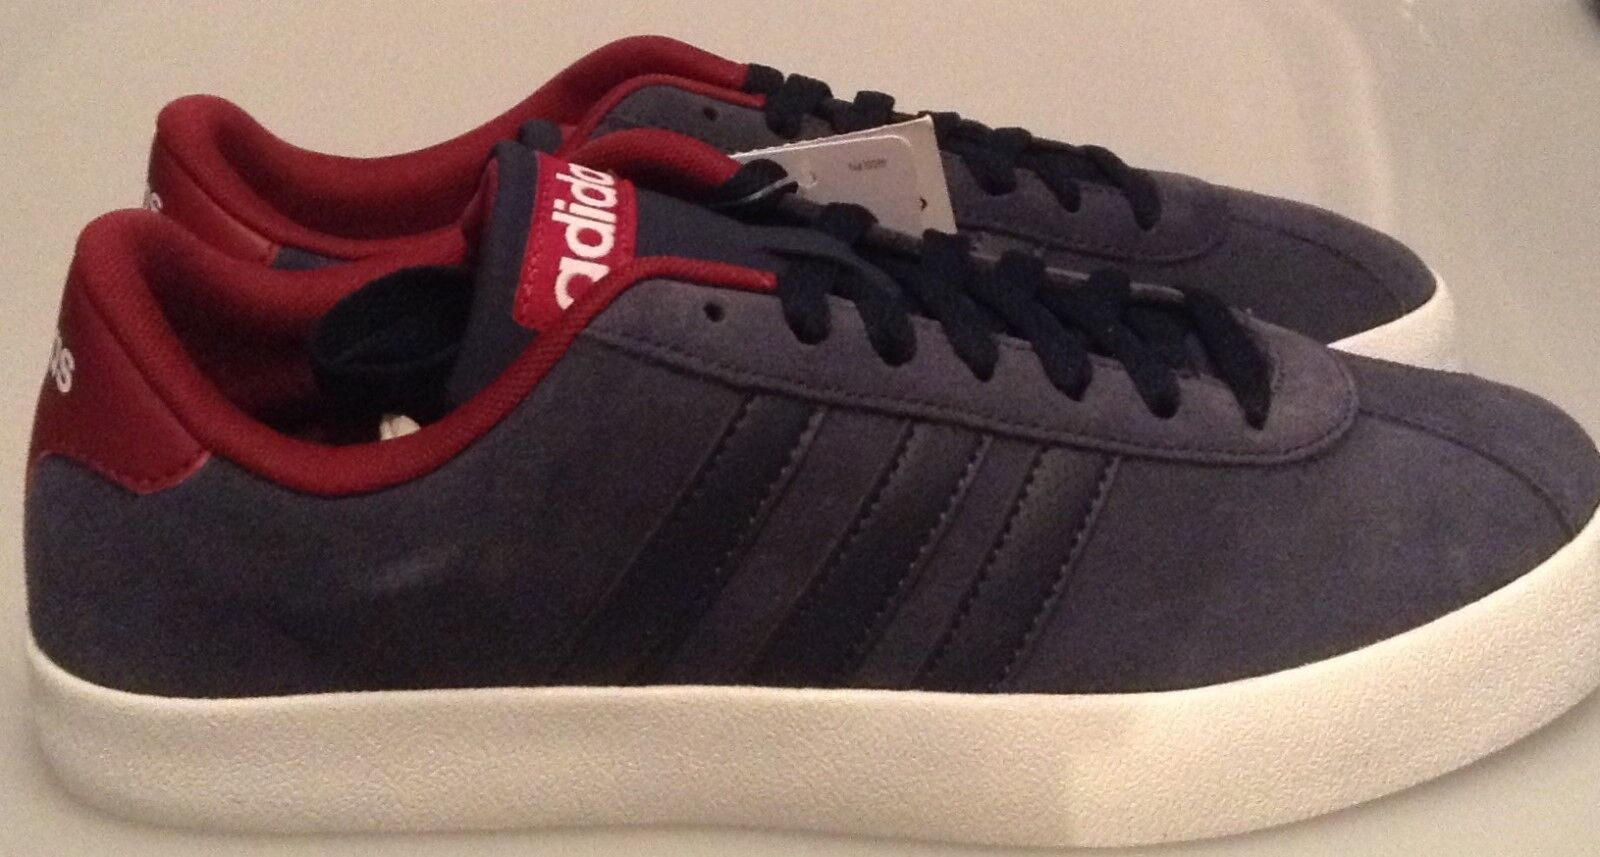 ADIDAS COURT COURT ADIDAS VULC TRAINERS - BB9635 - NAVY-BURGUNDY - MEN'S SIZES UK 6.5 TO 11 31ee55